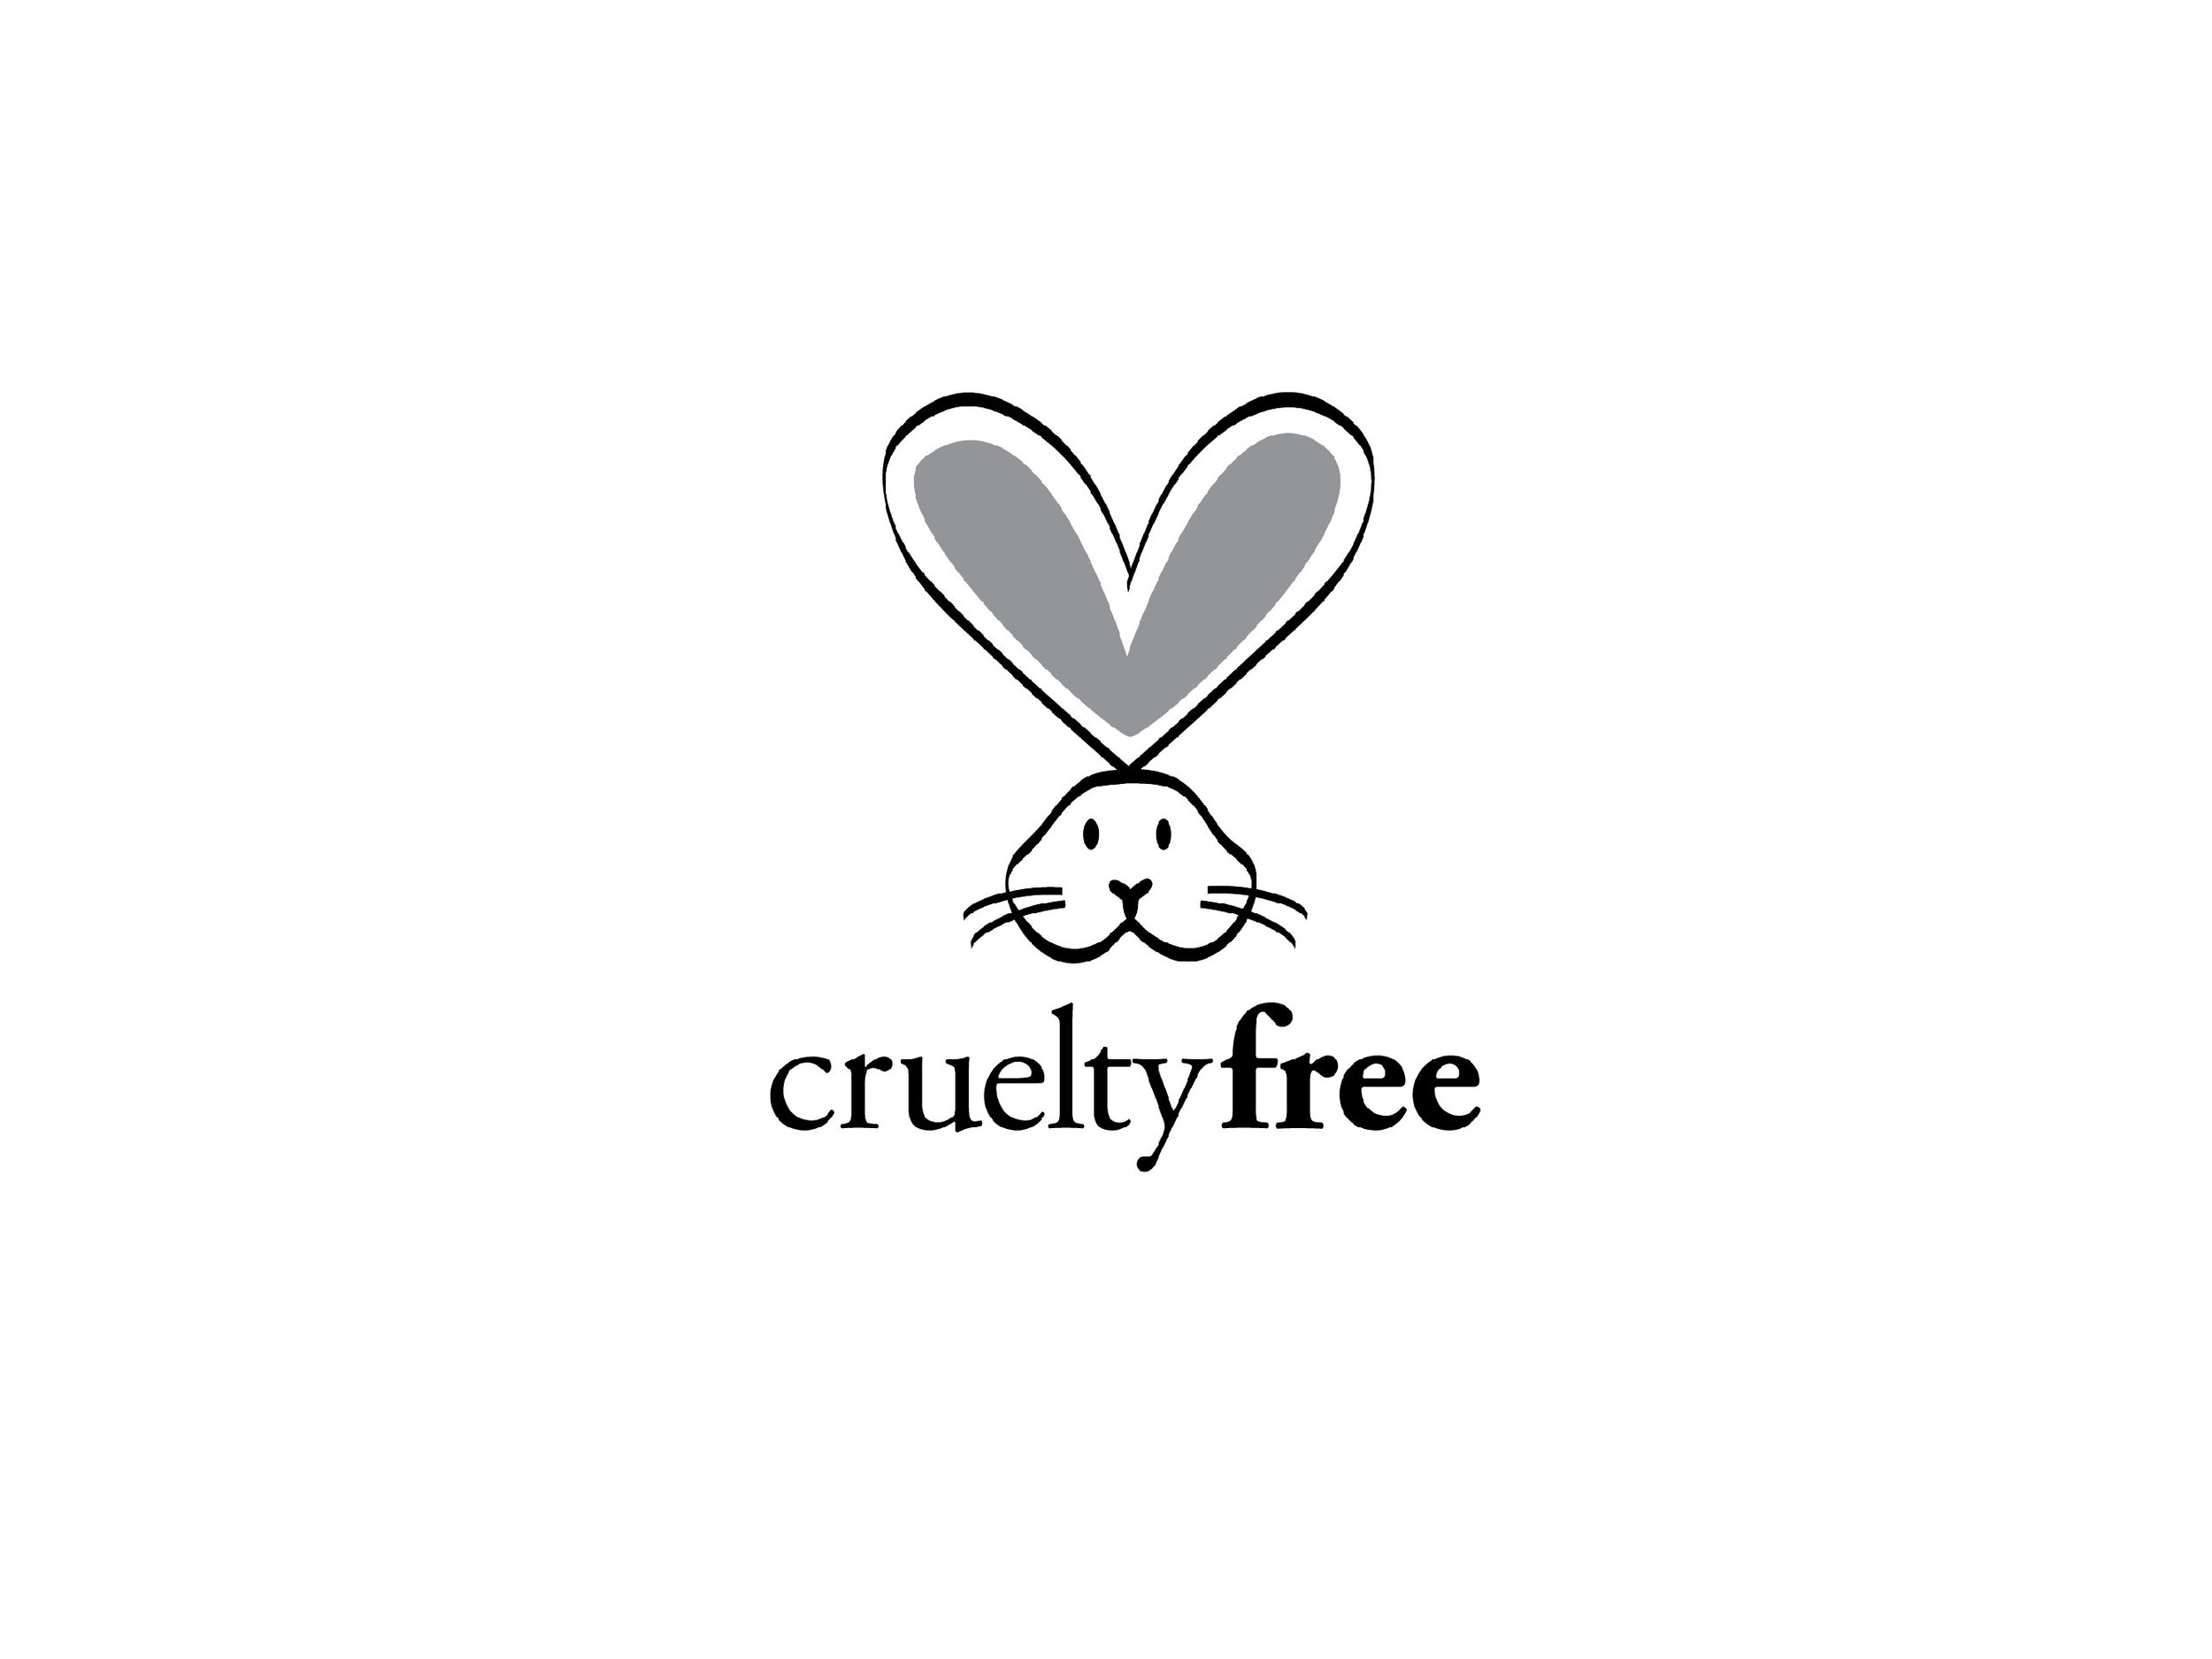 DPR SKN - Leaping Bunny Certified Cruelty-Free